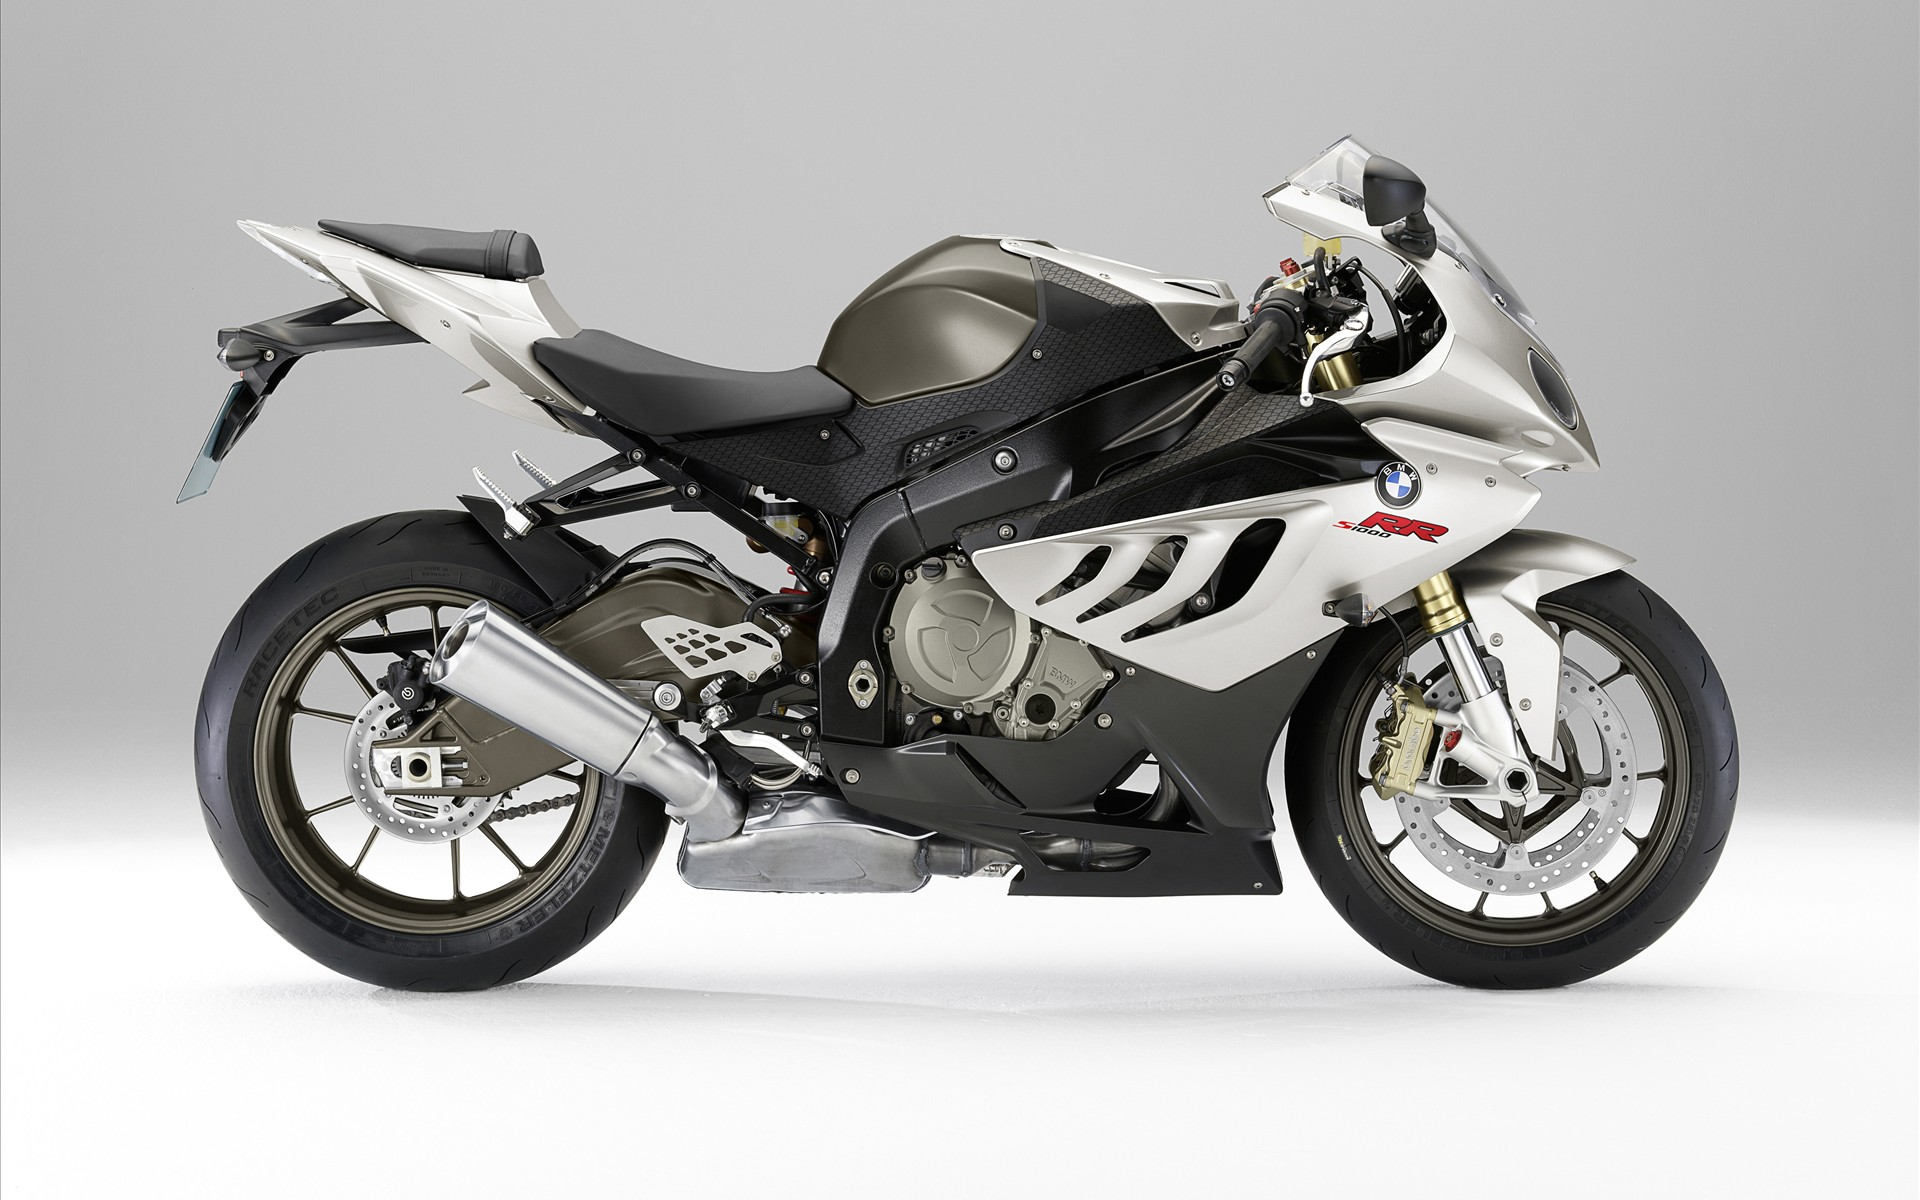 BMW S 1000 RR Bike 312.84 Kb